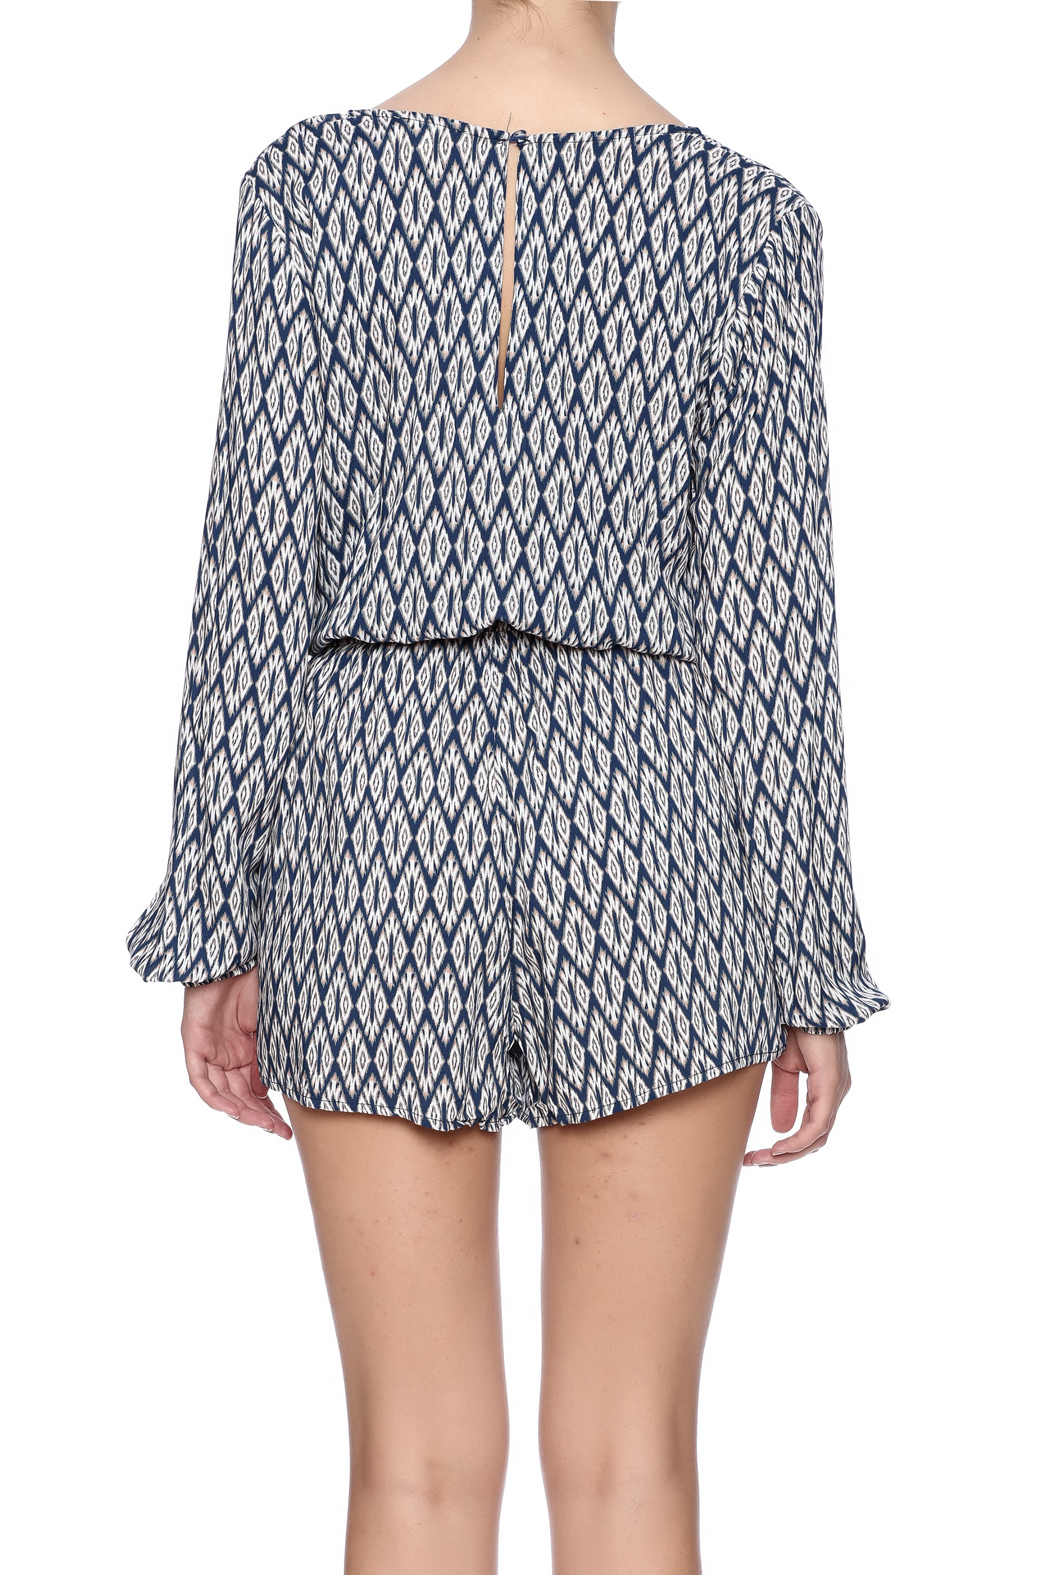 Kori The Taylor Romper - Back Cropped Image